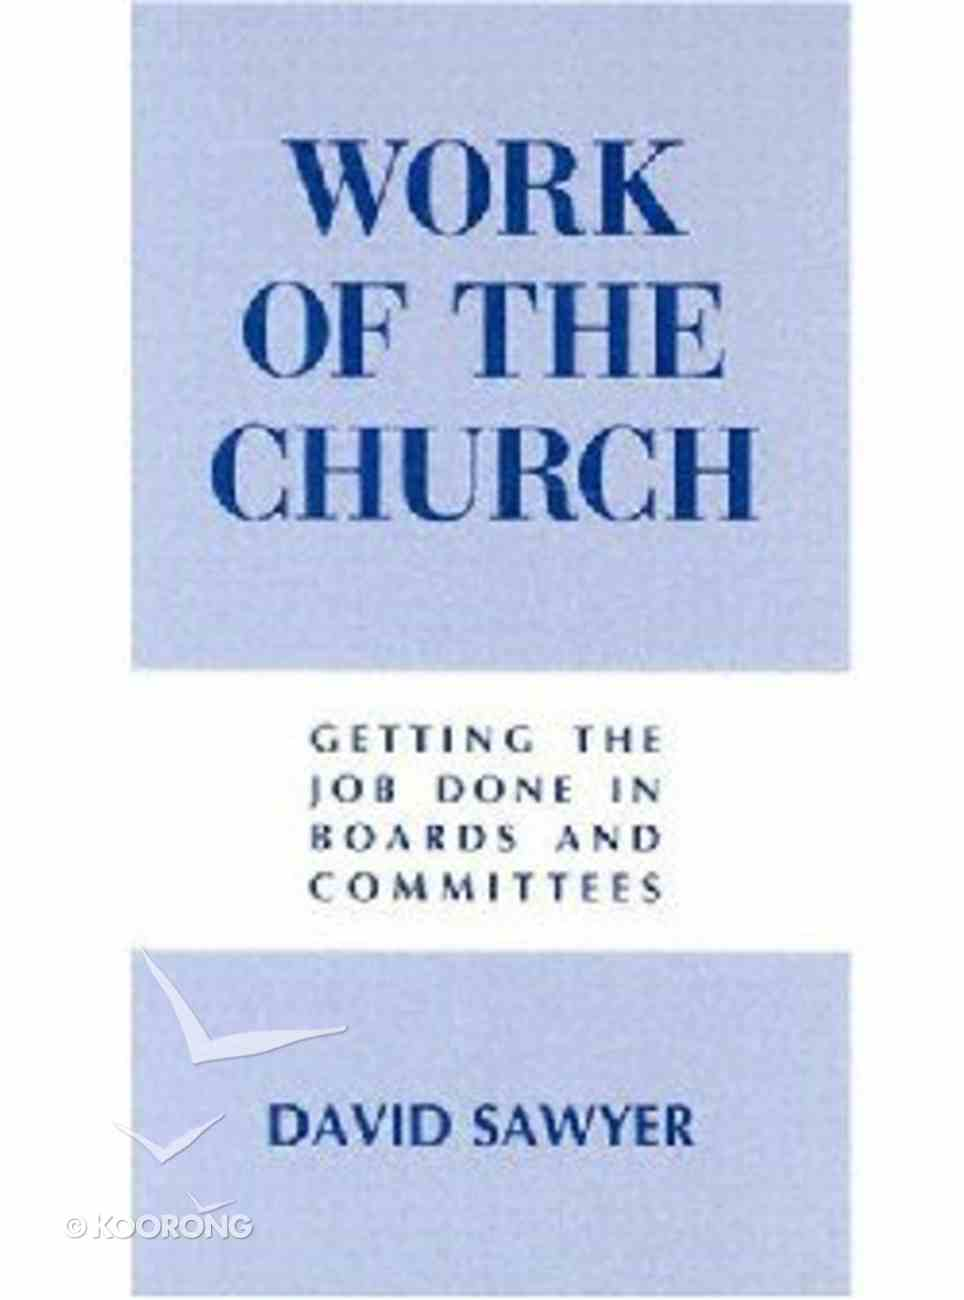 Getting the Job Done (Work Of The Church Series) Paperback